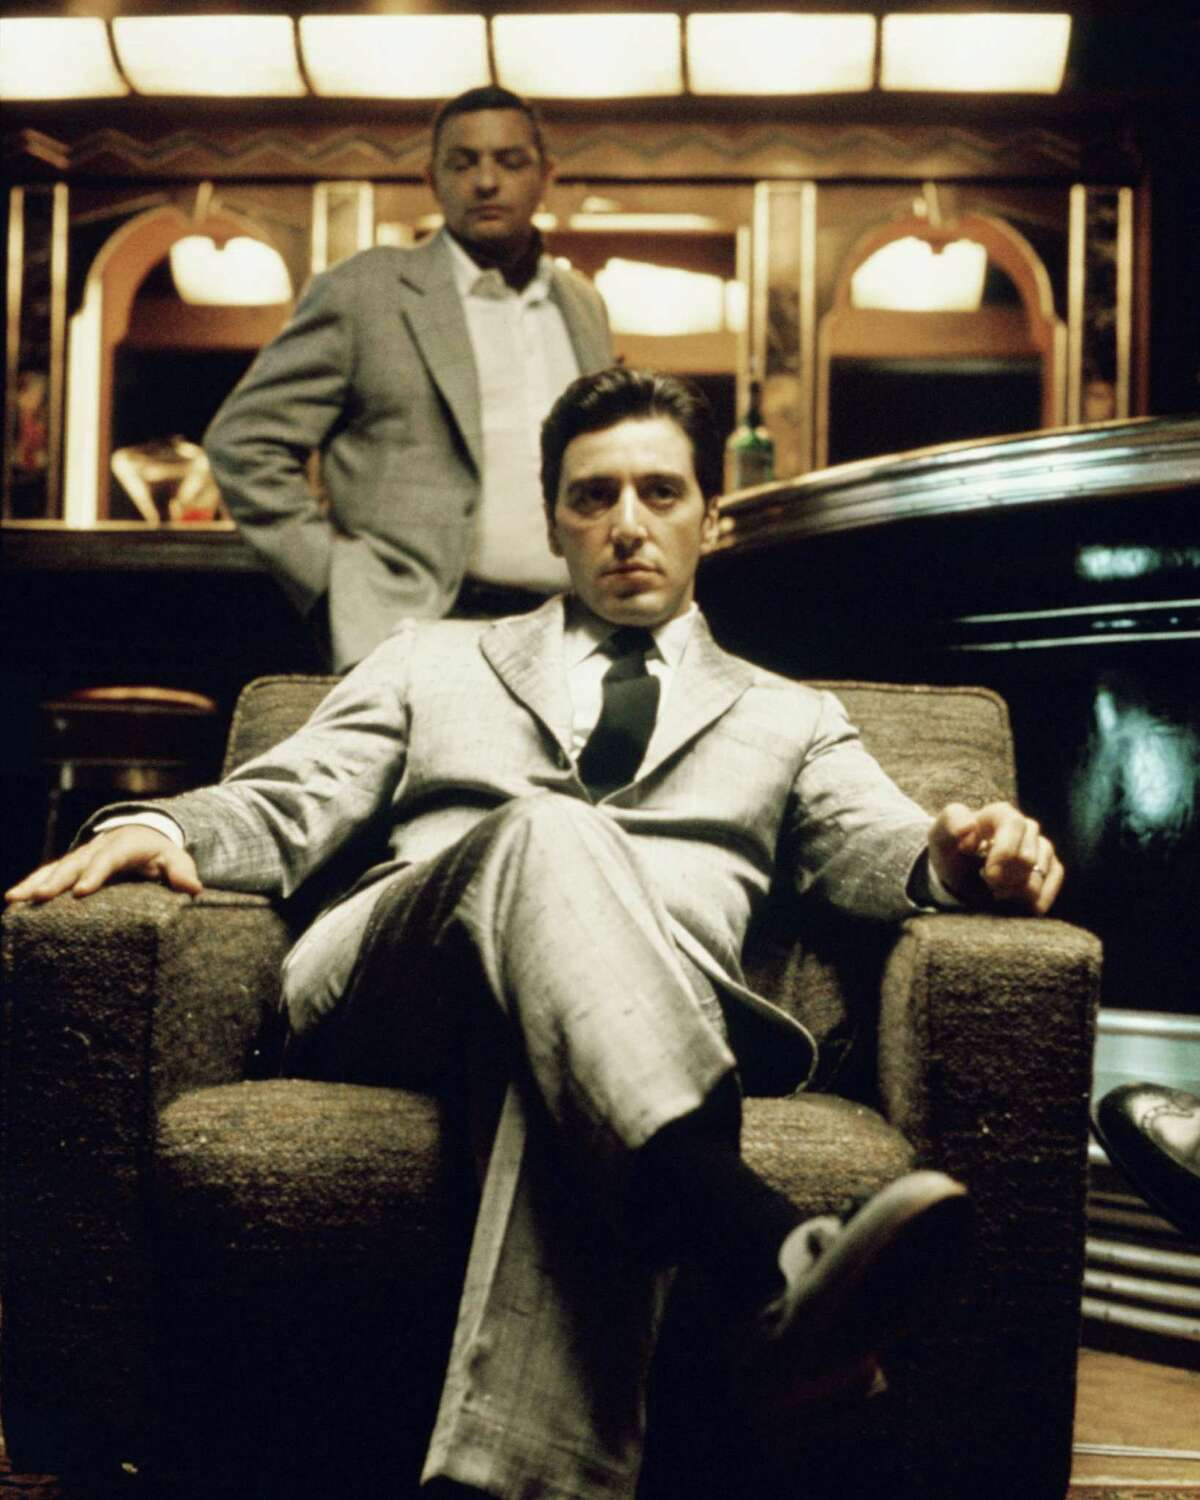 We got a second helping of Al Pacino, aka: Don Michael Corleone, in 'The Godfather Part II', 1974. Lucky for us, there weren't any more horse heads in the bed.